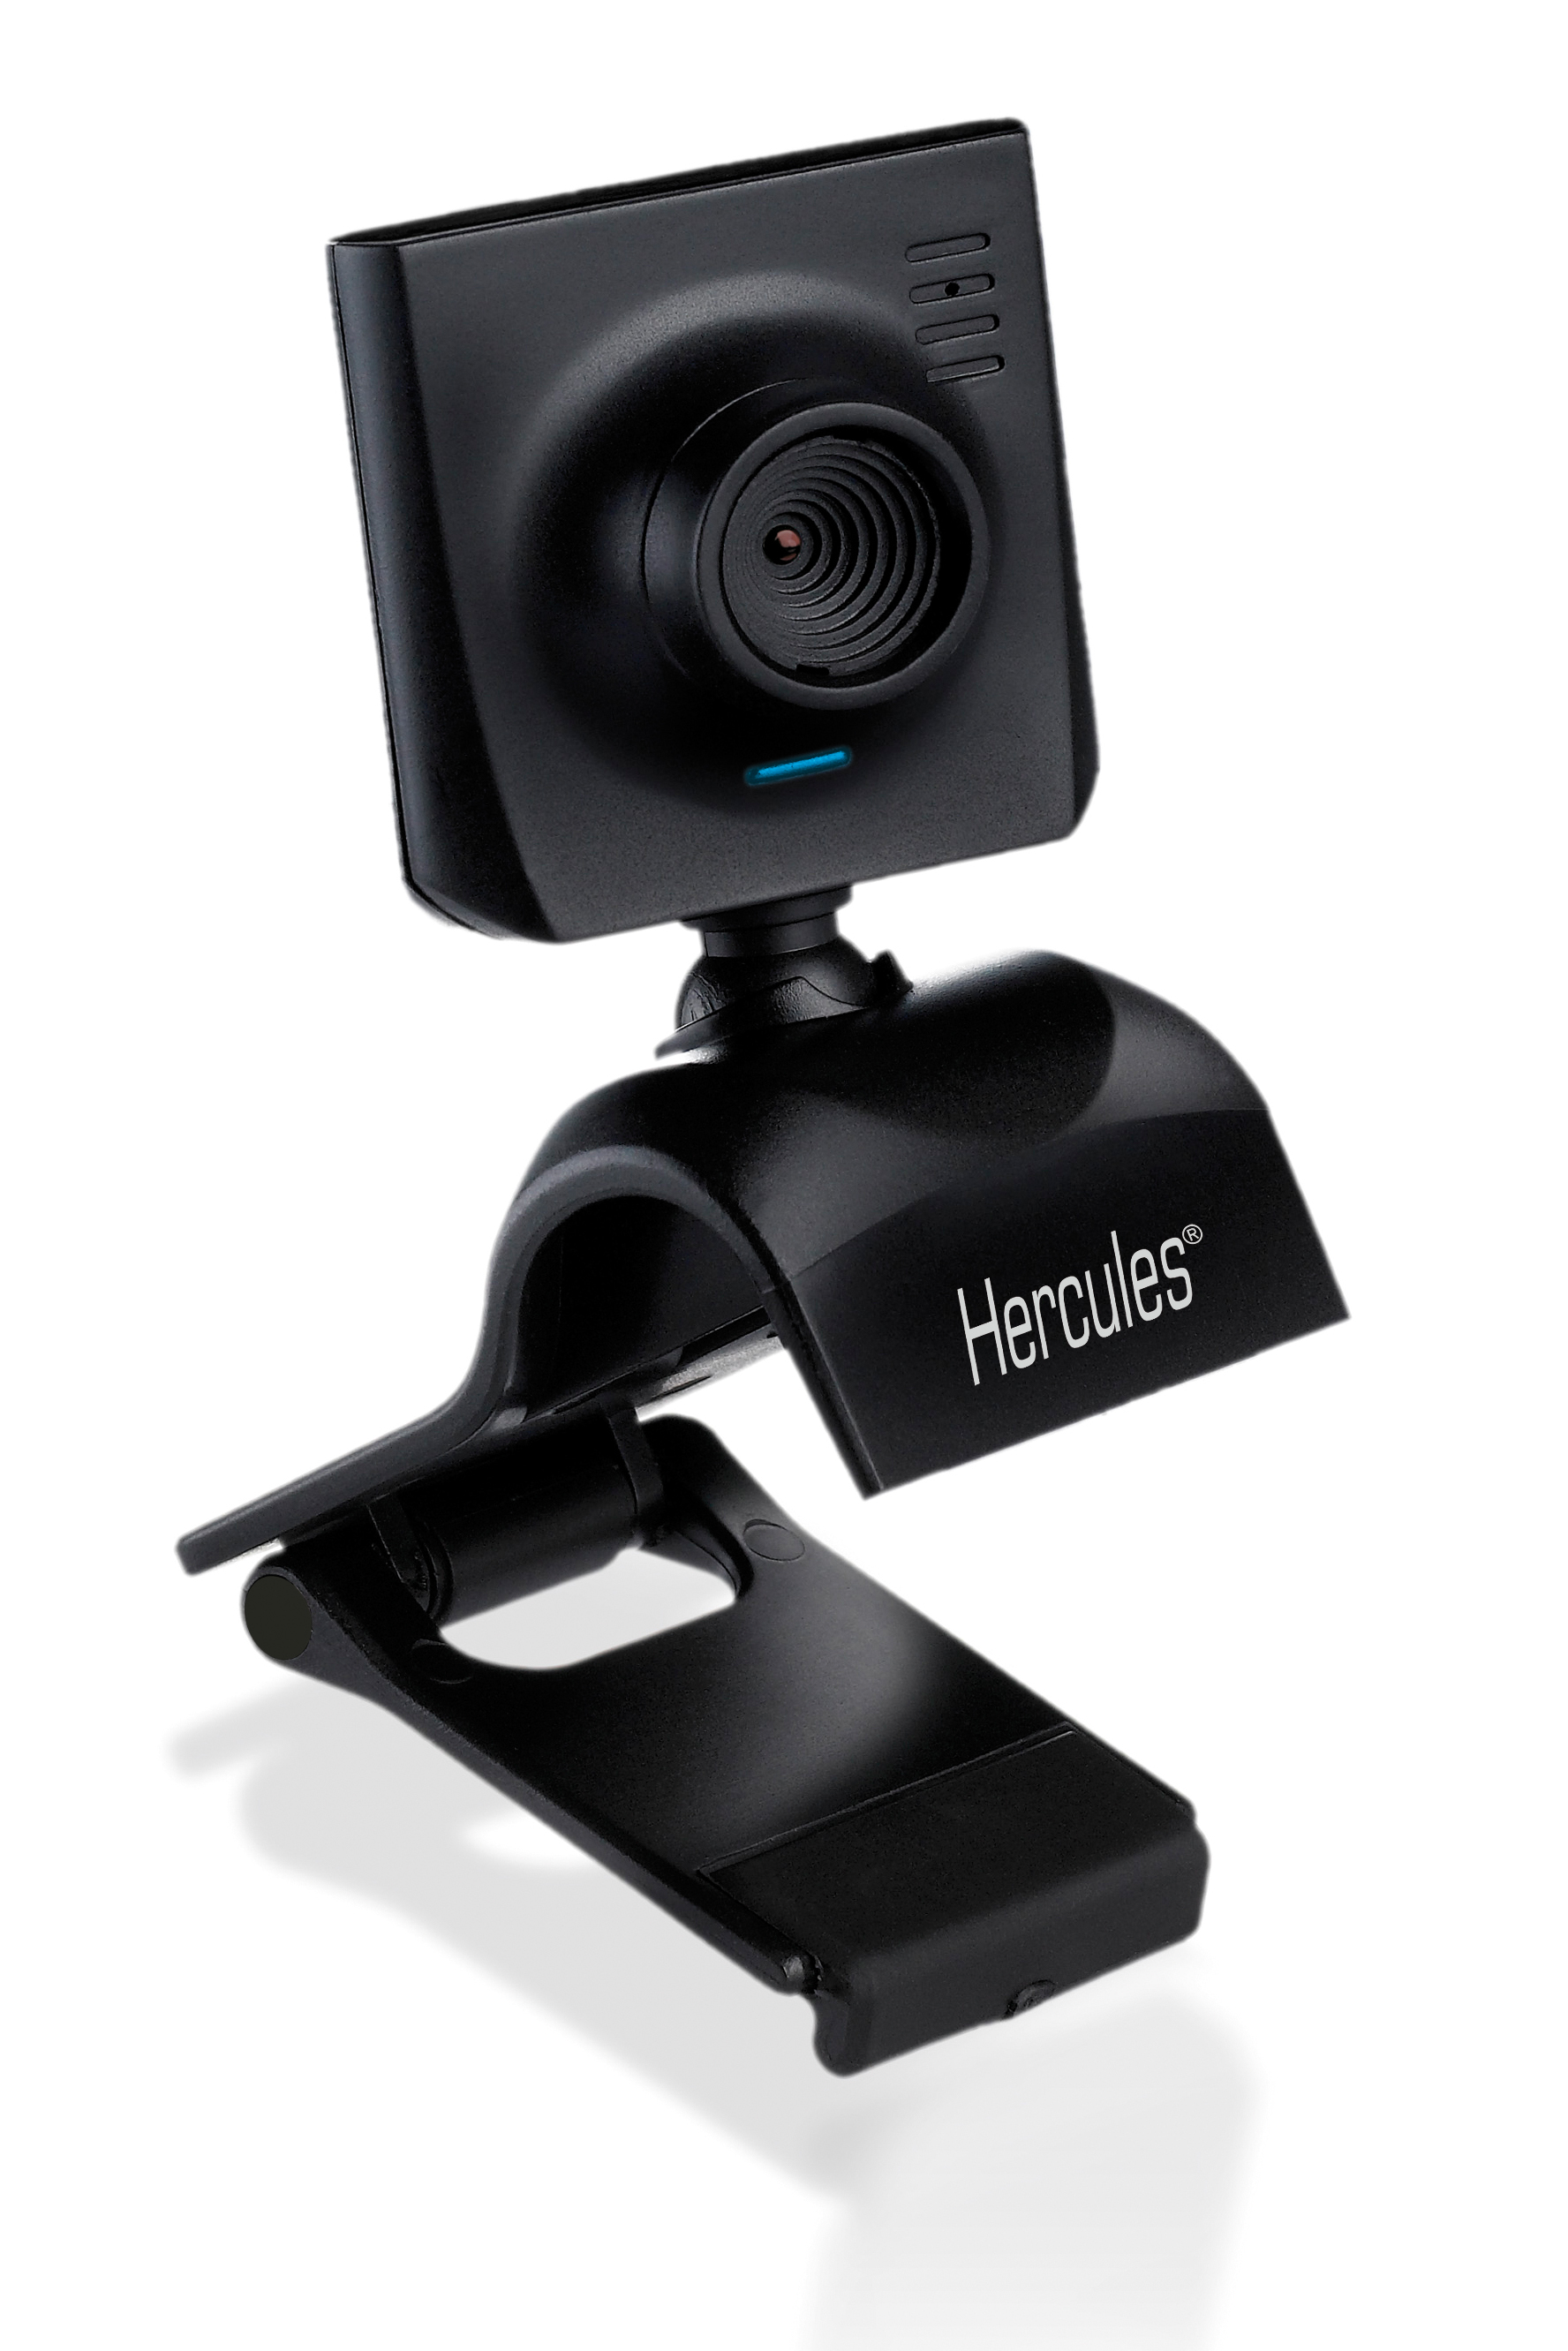 Hercules 4780487 USB WebCam